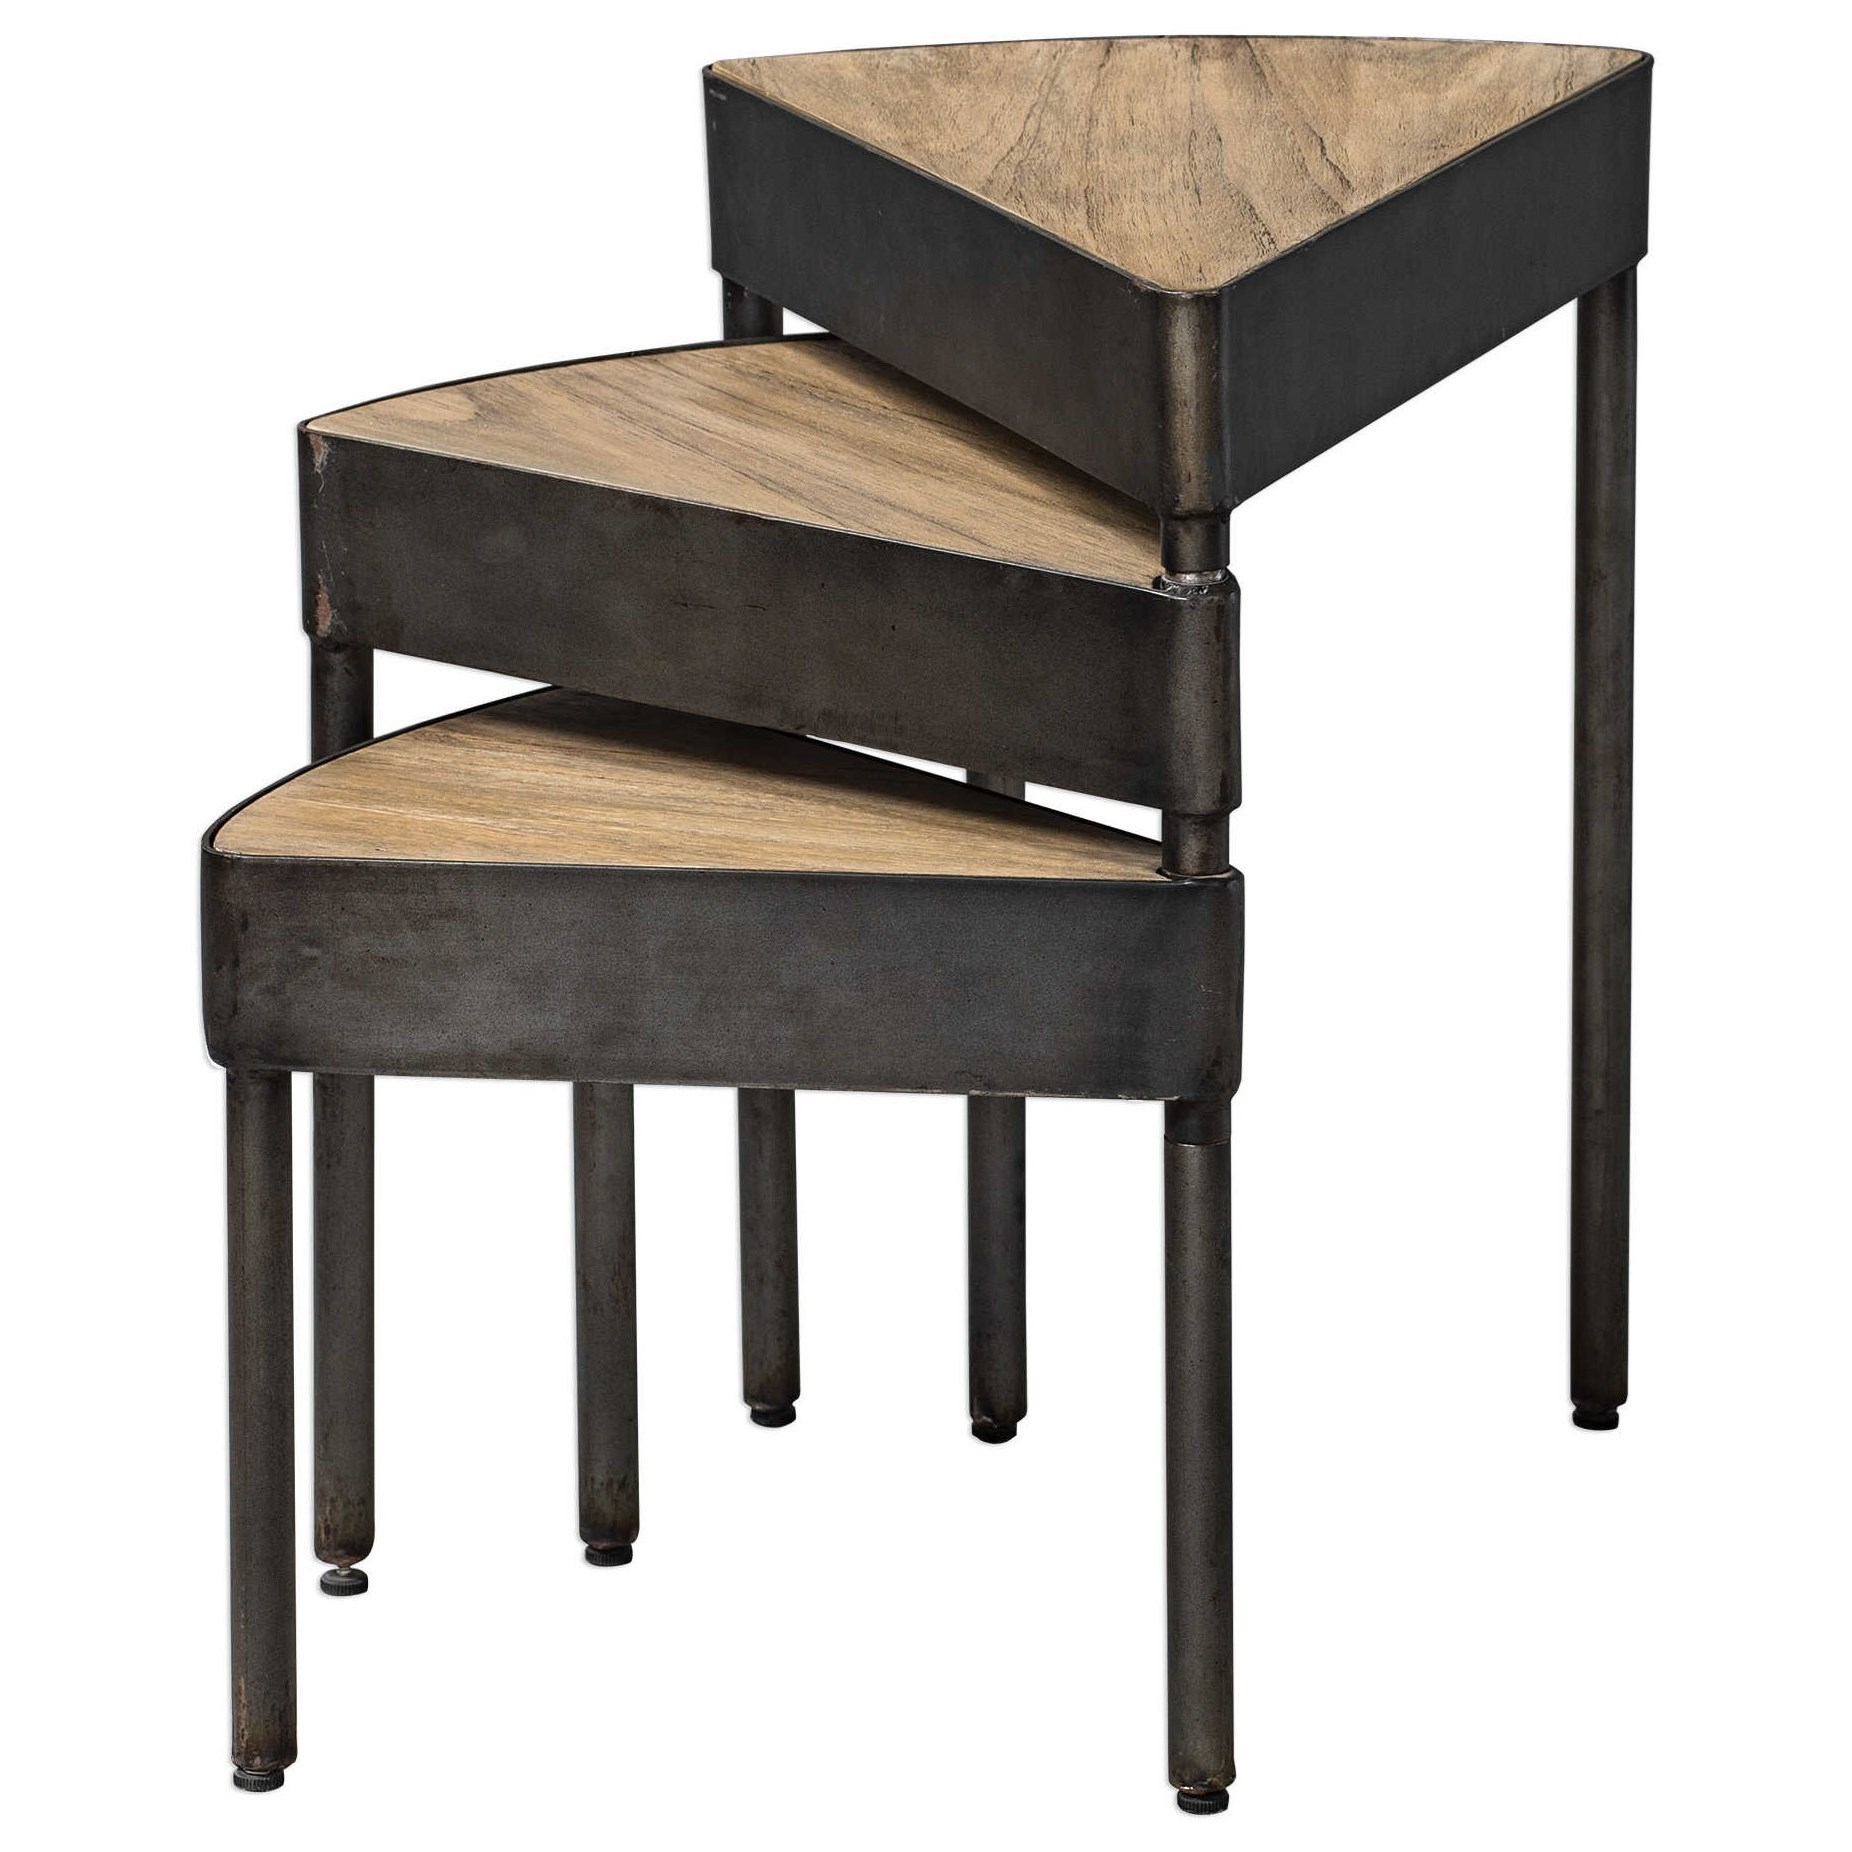 Accent Furniture - Occasional Tables Akito Nesting Table by Uttermost at Stuckey Furniture